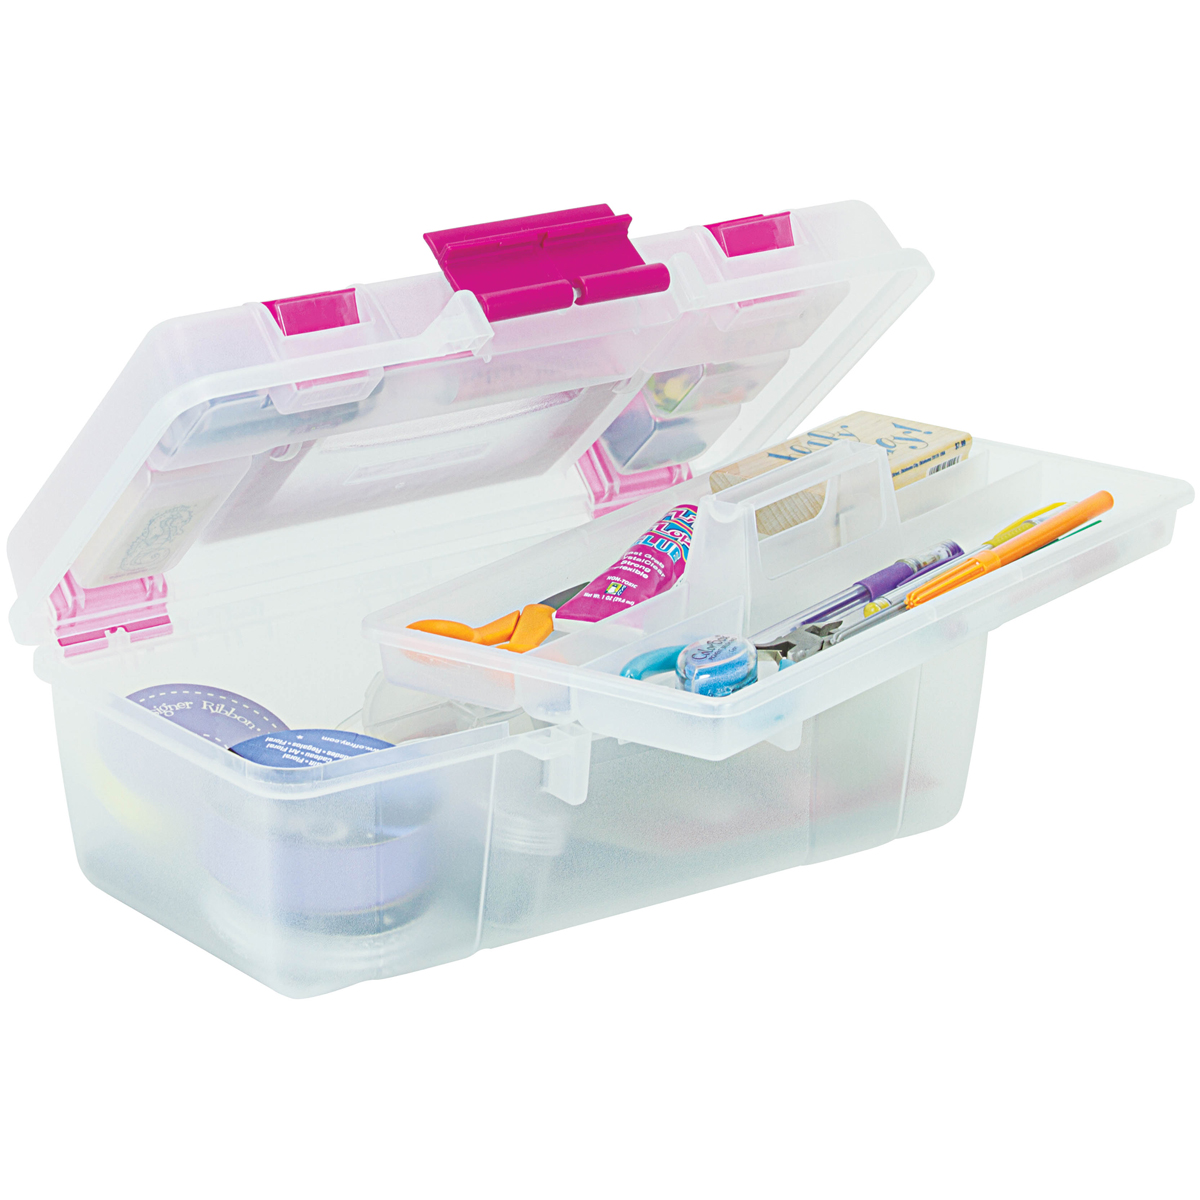 Creative Options Clear Tool Box Organizer, 1 Each